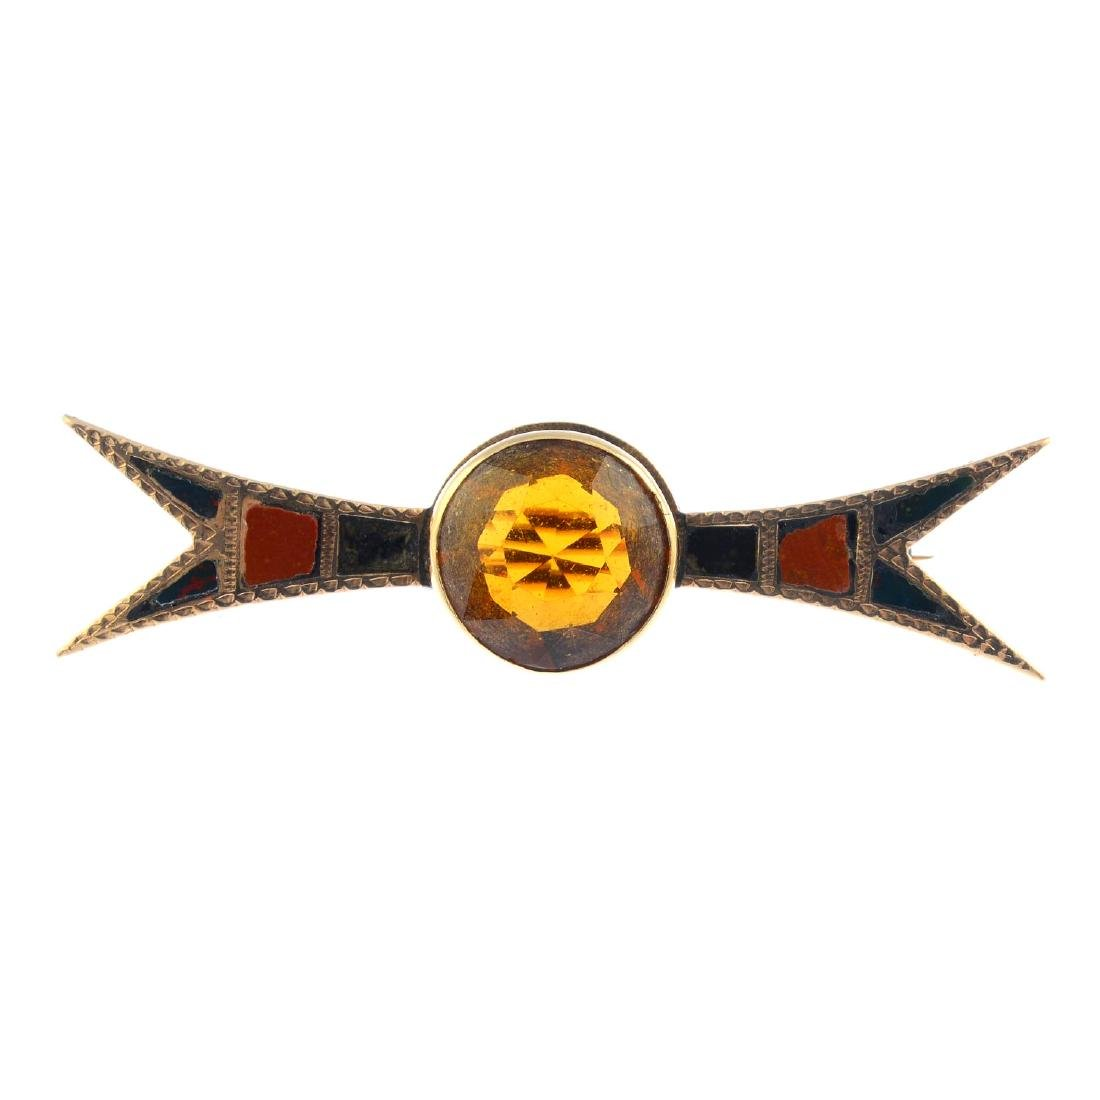 A citrine and hardstone brooch. The circular-shape